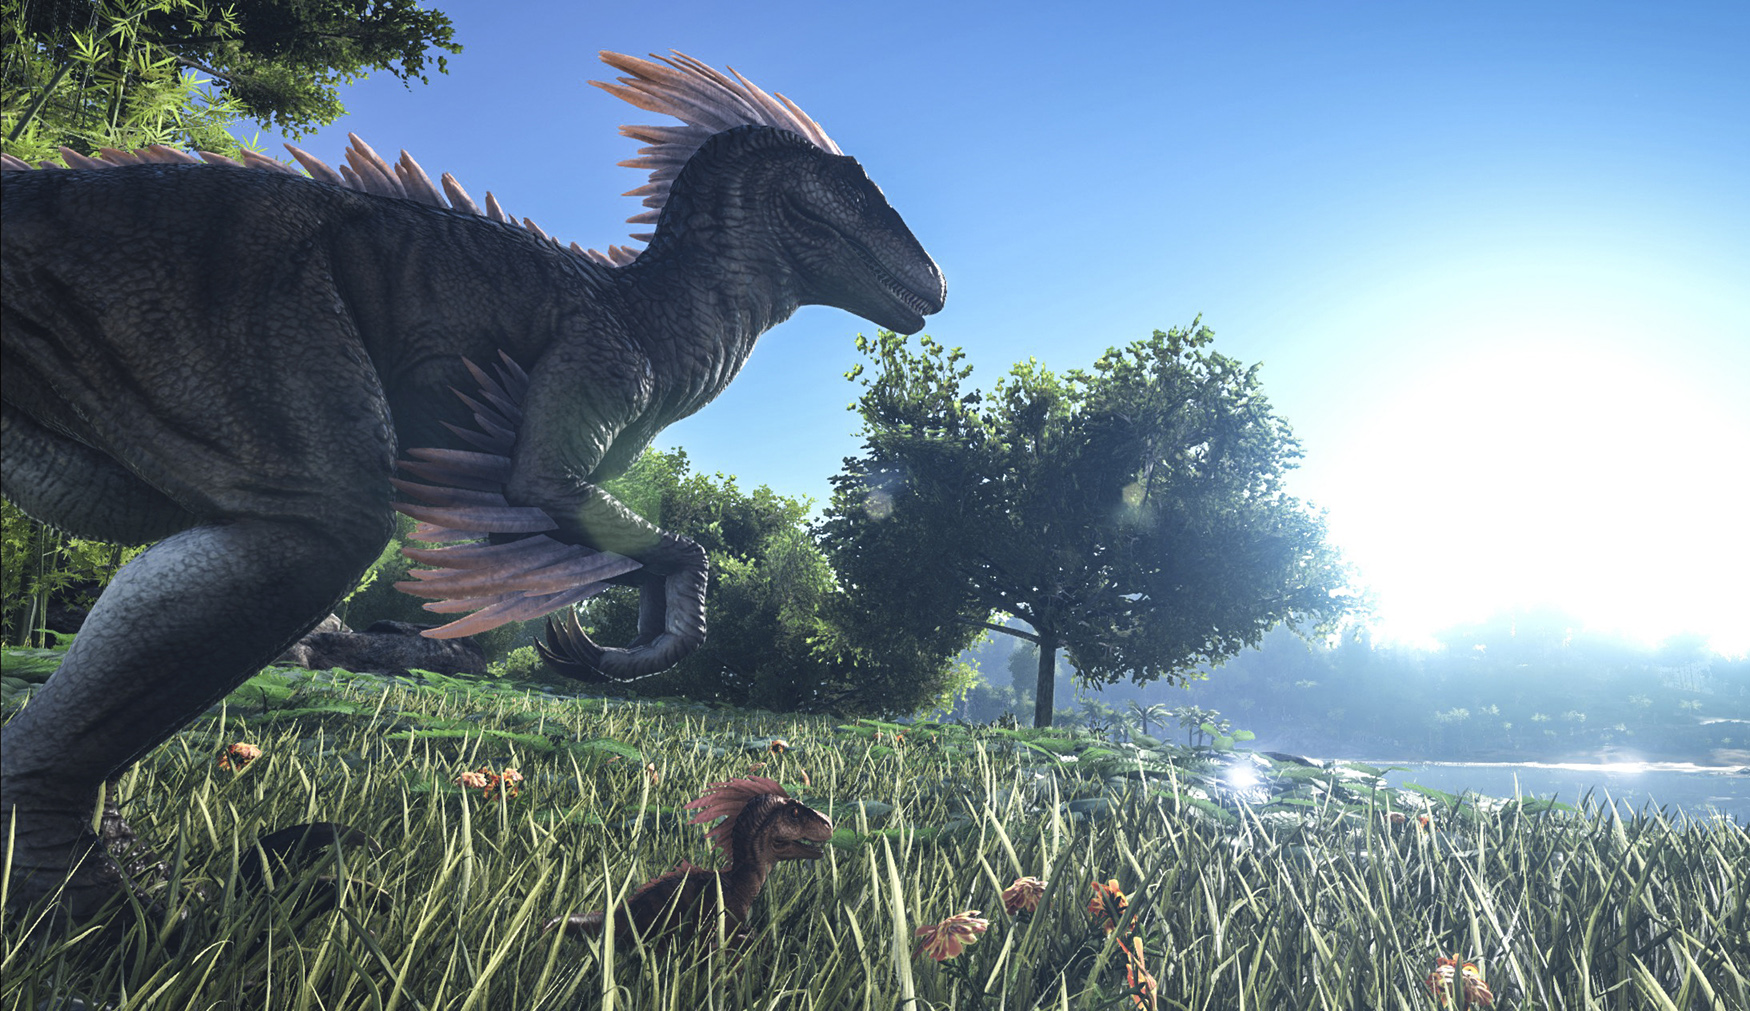 Breeding Official Ark Survival Evolved Wiki Waking up on 'aberration', a derelict, malfunctioning ark with an elaborate underground biome system, survivors face exotic new challenges unli. ark survival evolved wiki